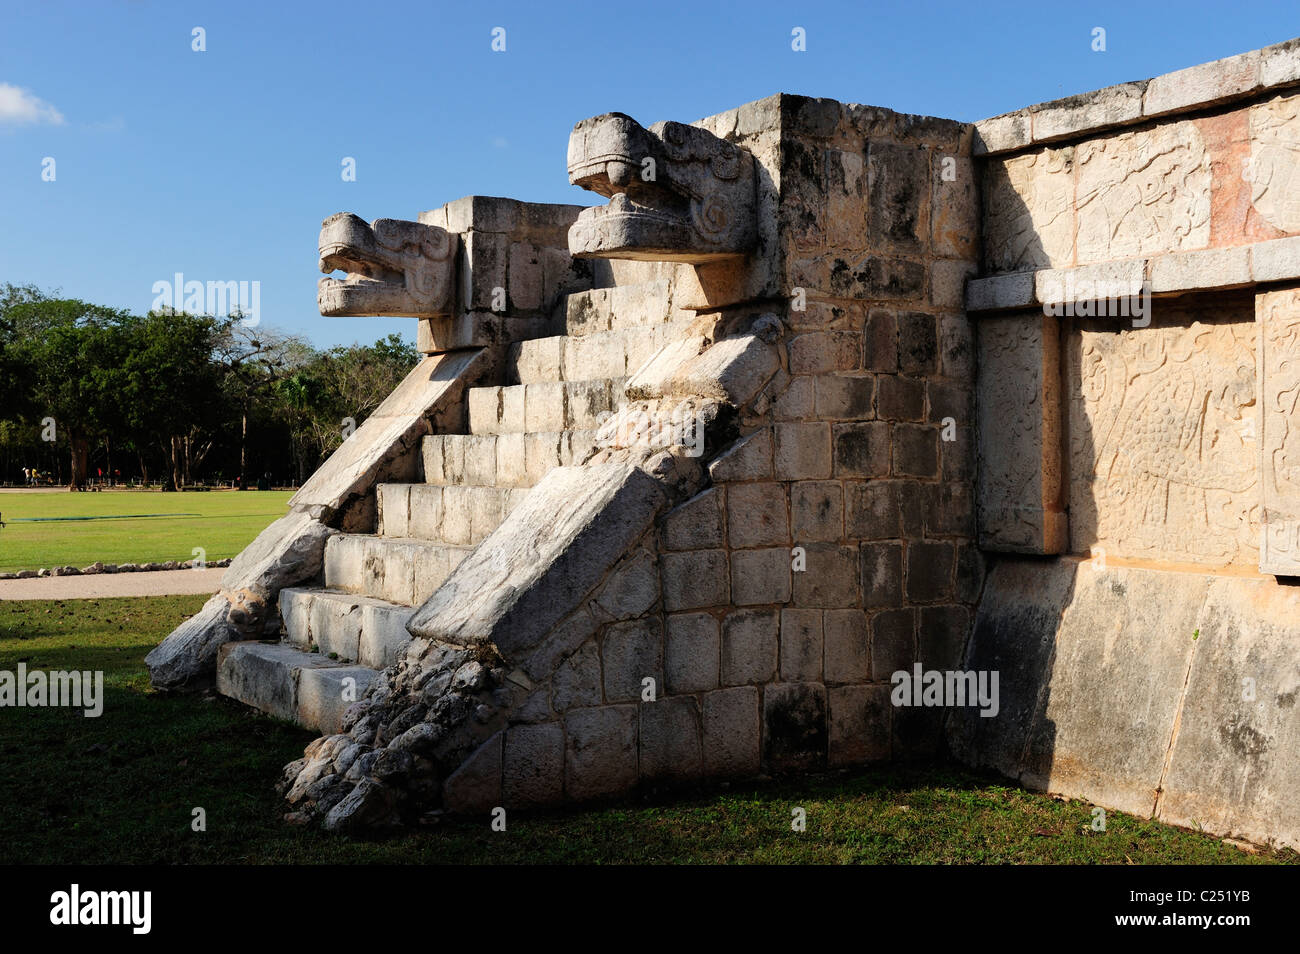 Platform of the Jaguars at Chichen Itza, Yucatan, Mexico - Stock Image